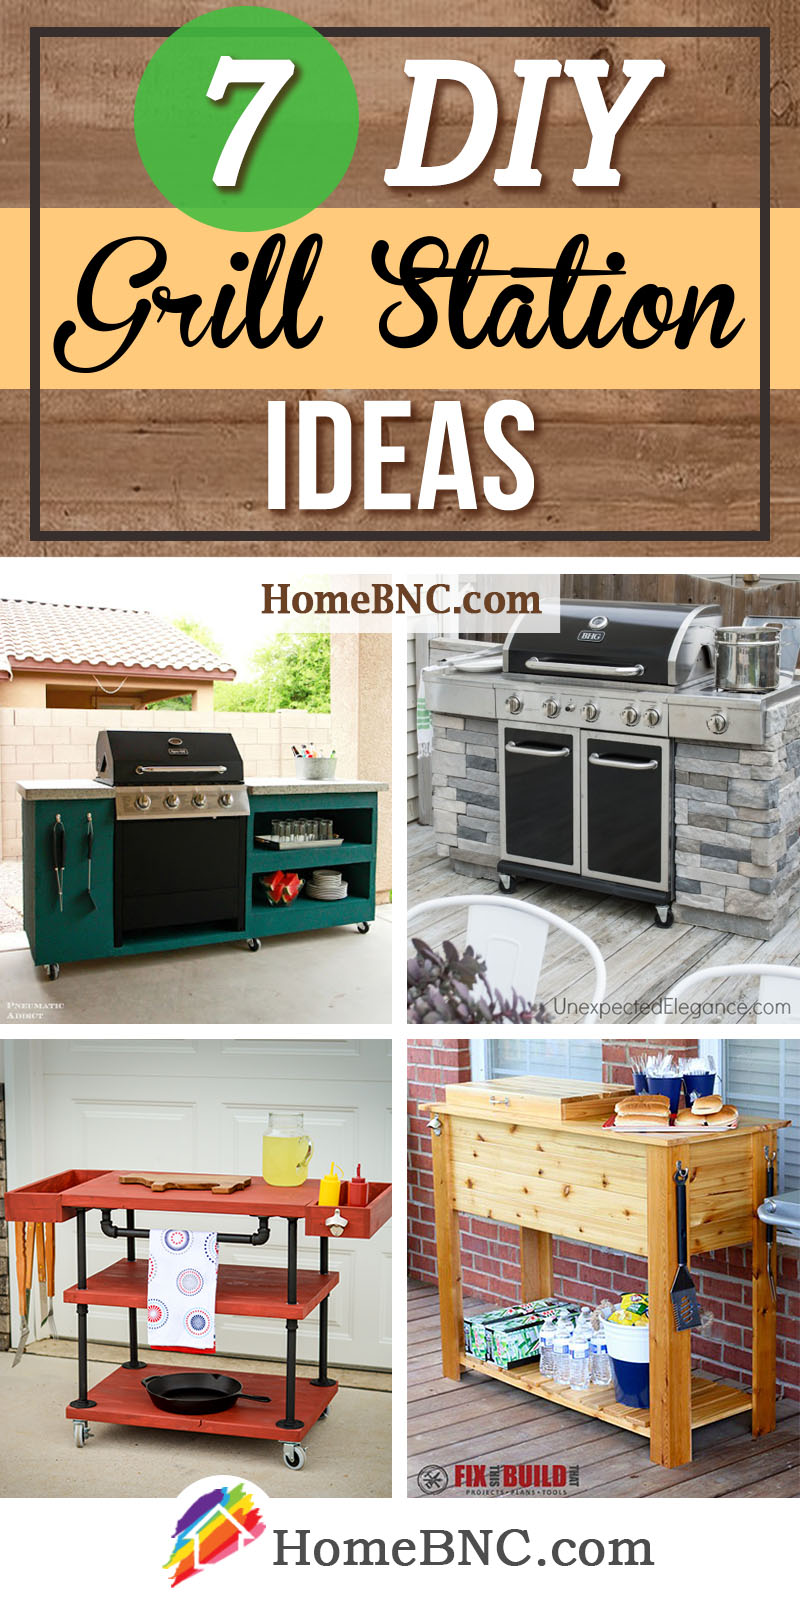 Diy Grill Station Ideas And Projects